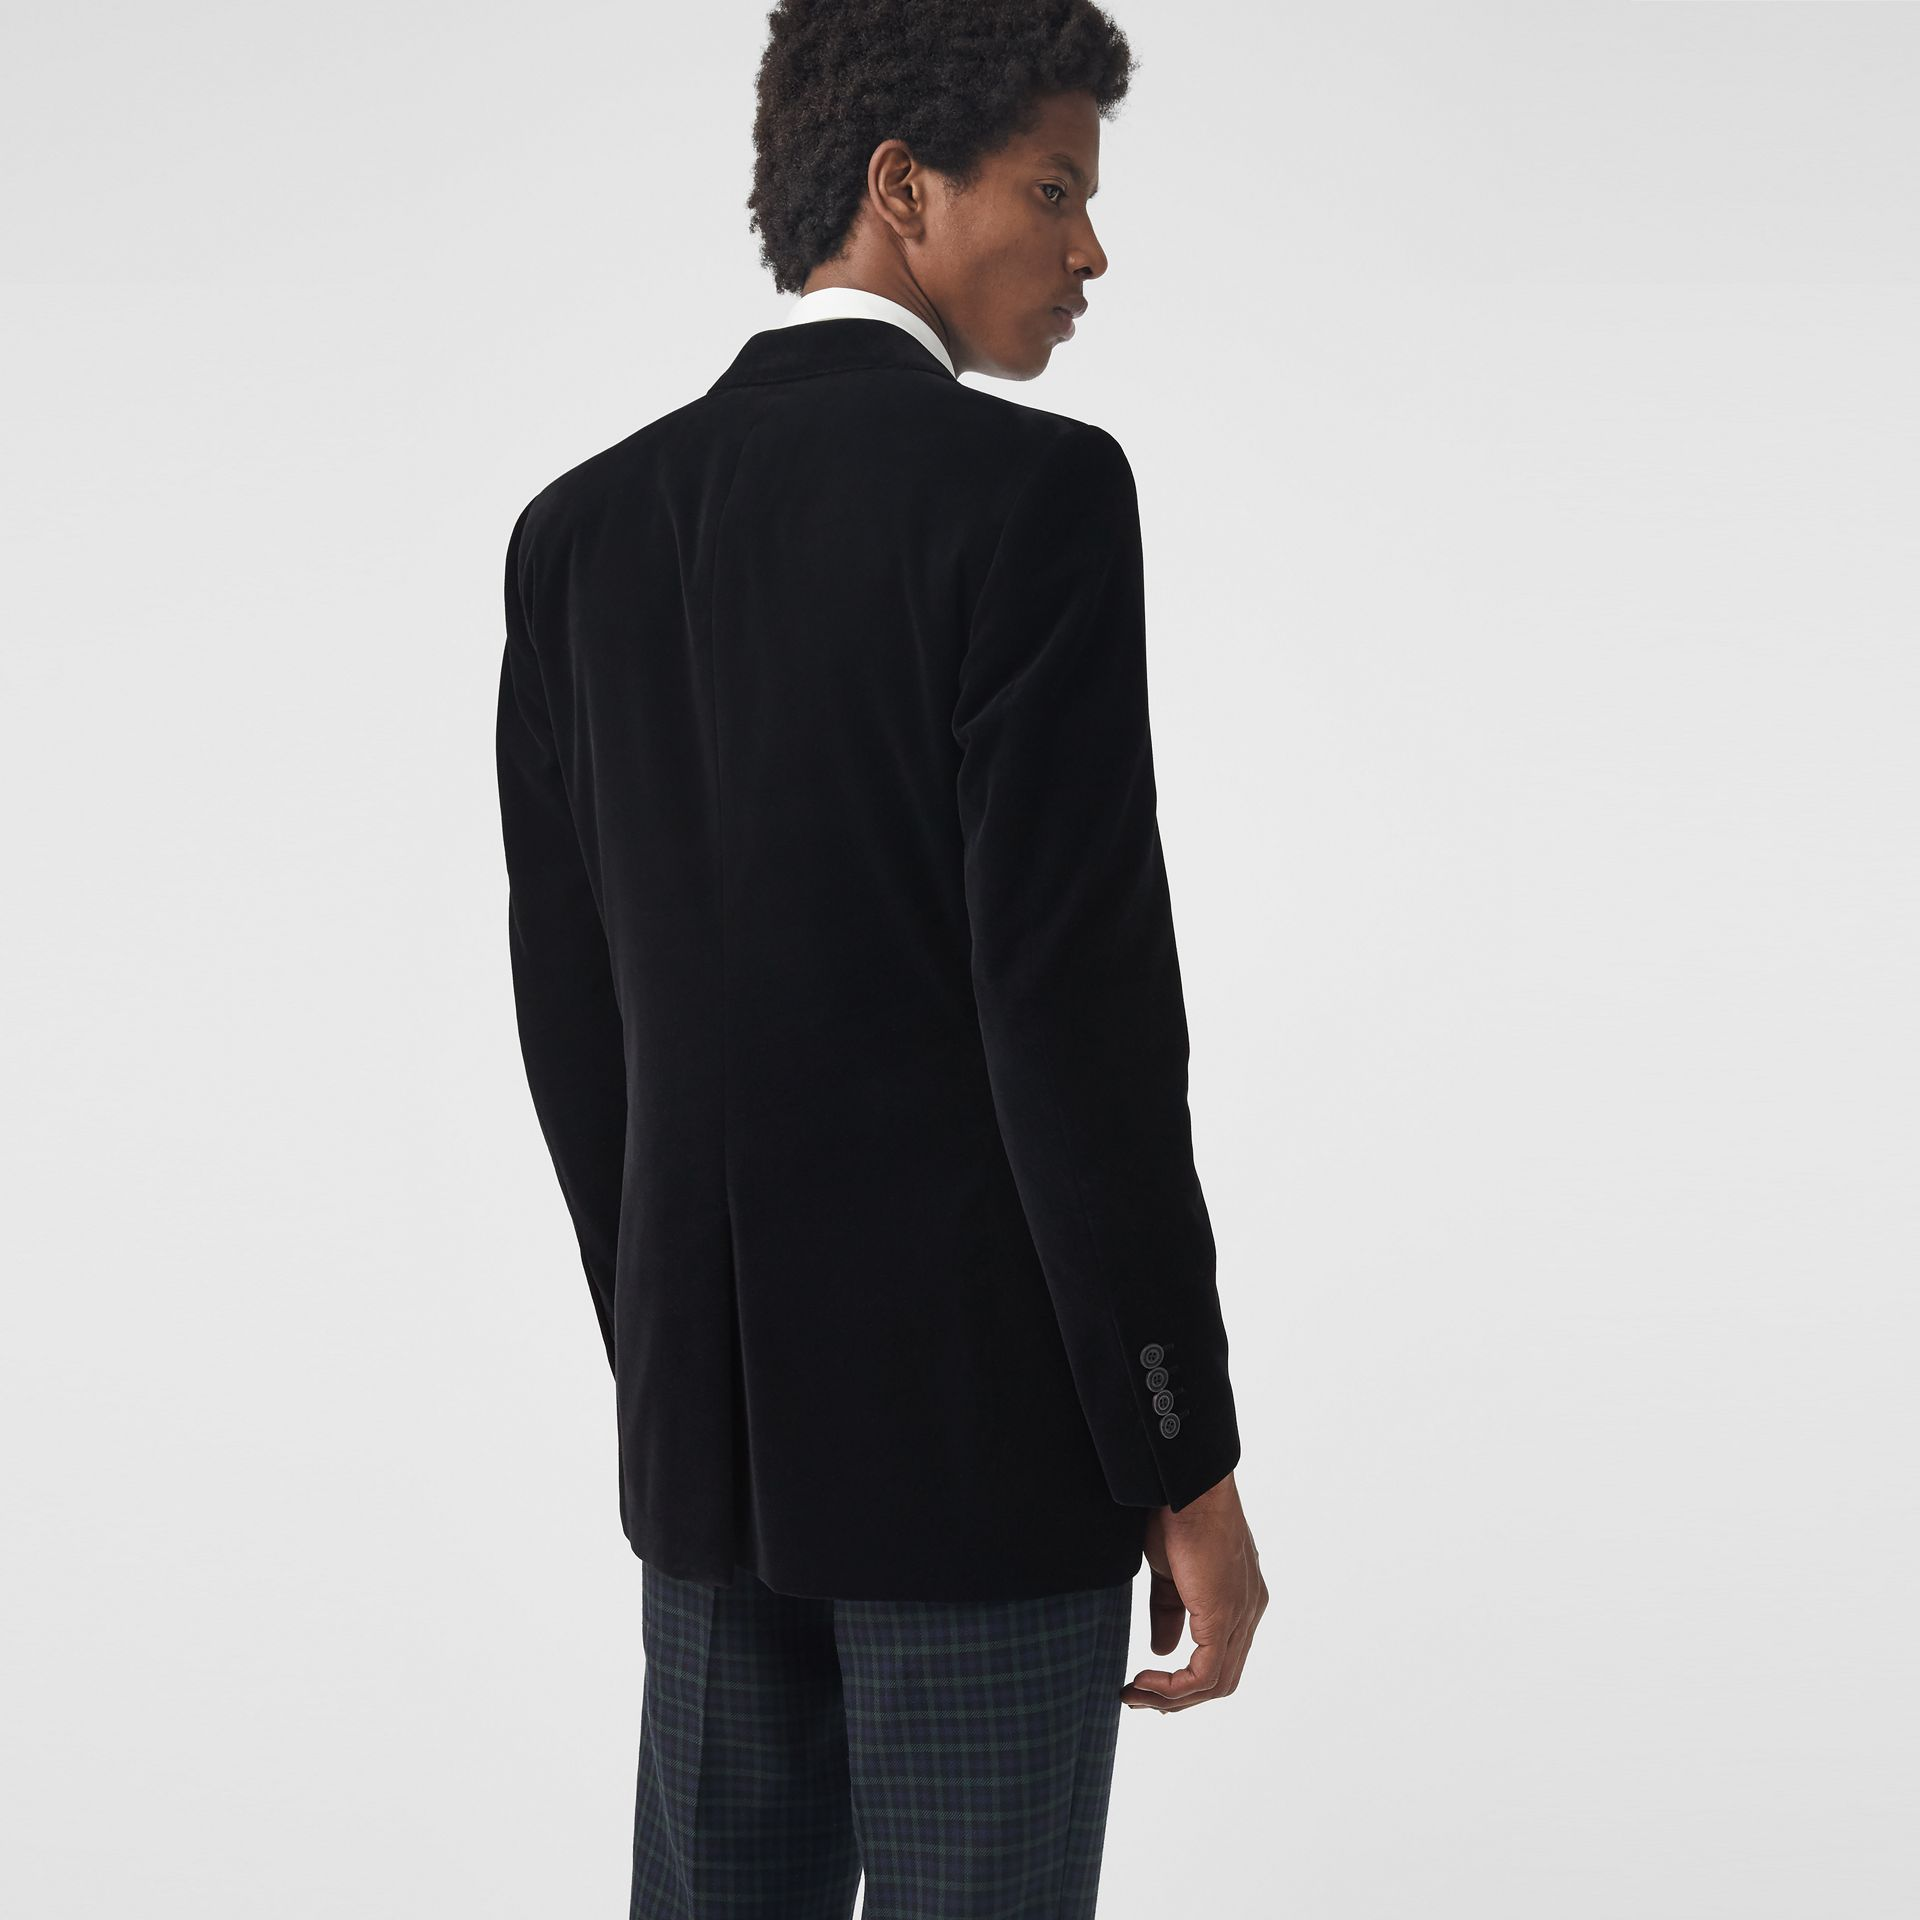 Classic Fit Velvet Tailored Jacket in Black - Men | Burberry - gallery image 2